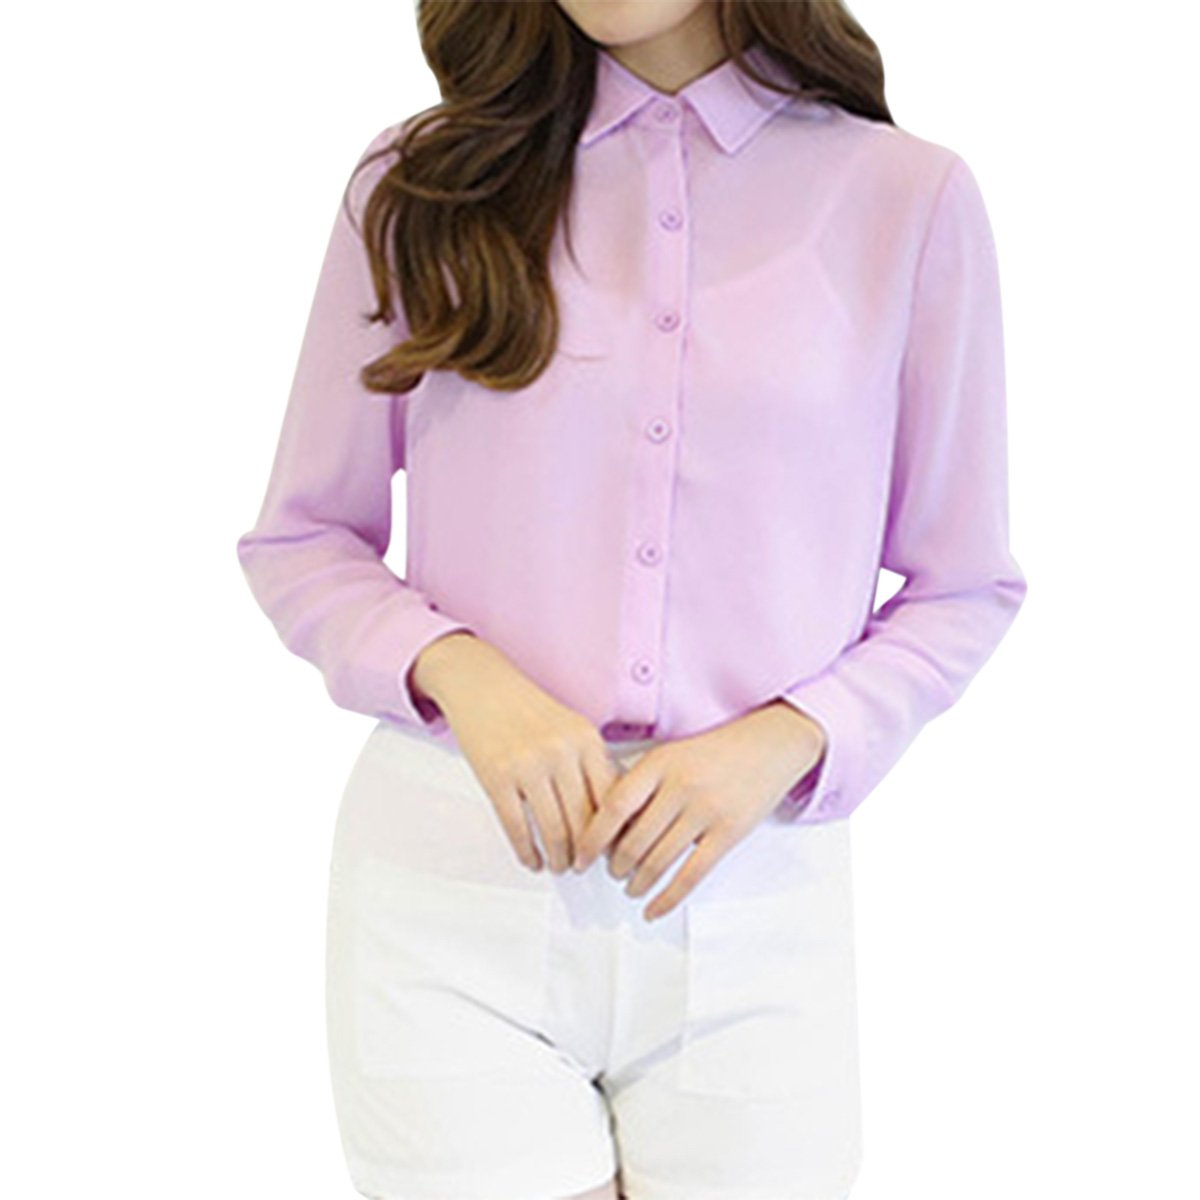 dca8ccaf5bf Cekaso Women s Button Up Shirts Solid Collared Sheer Long Sleeve Chiffon  Blouse  Amazon.ca  Clothing   Accessories